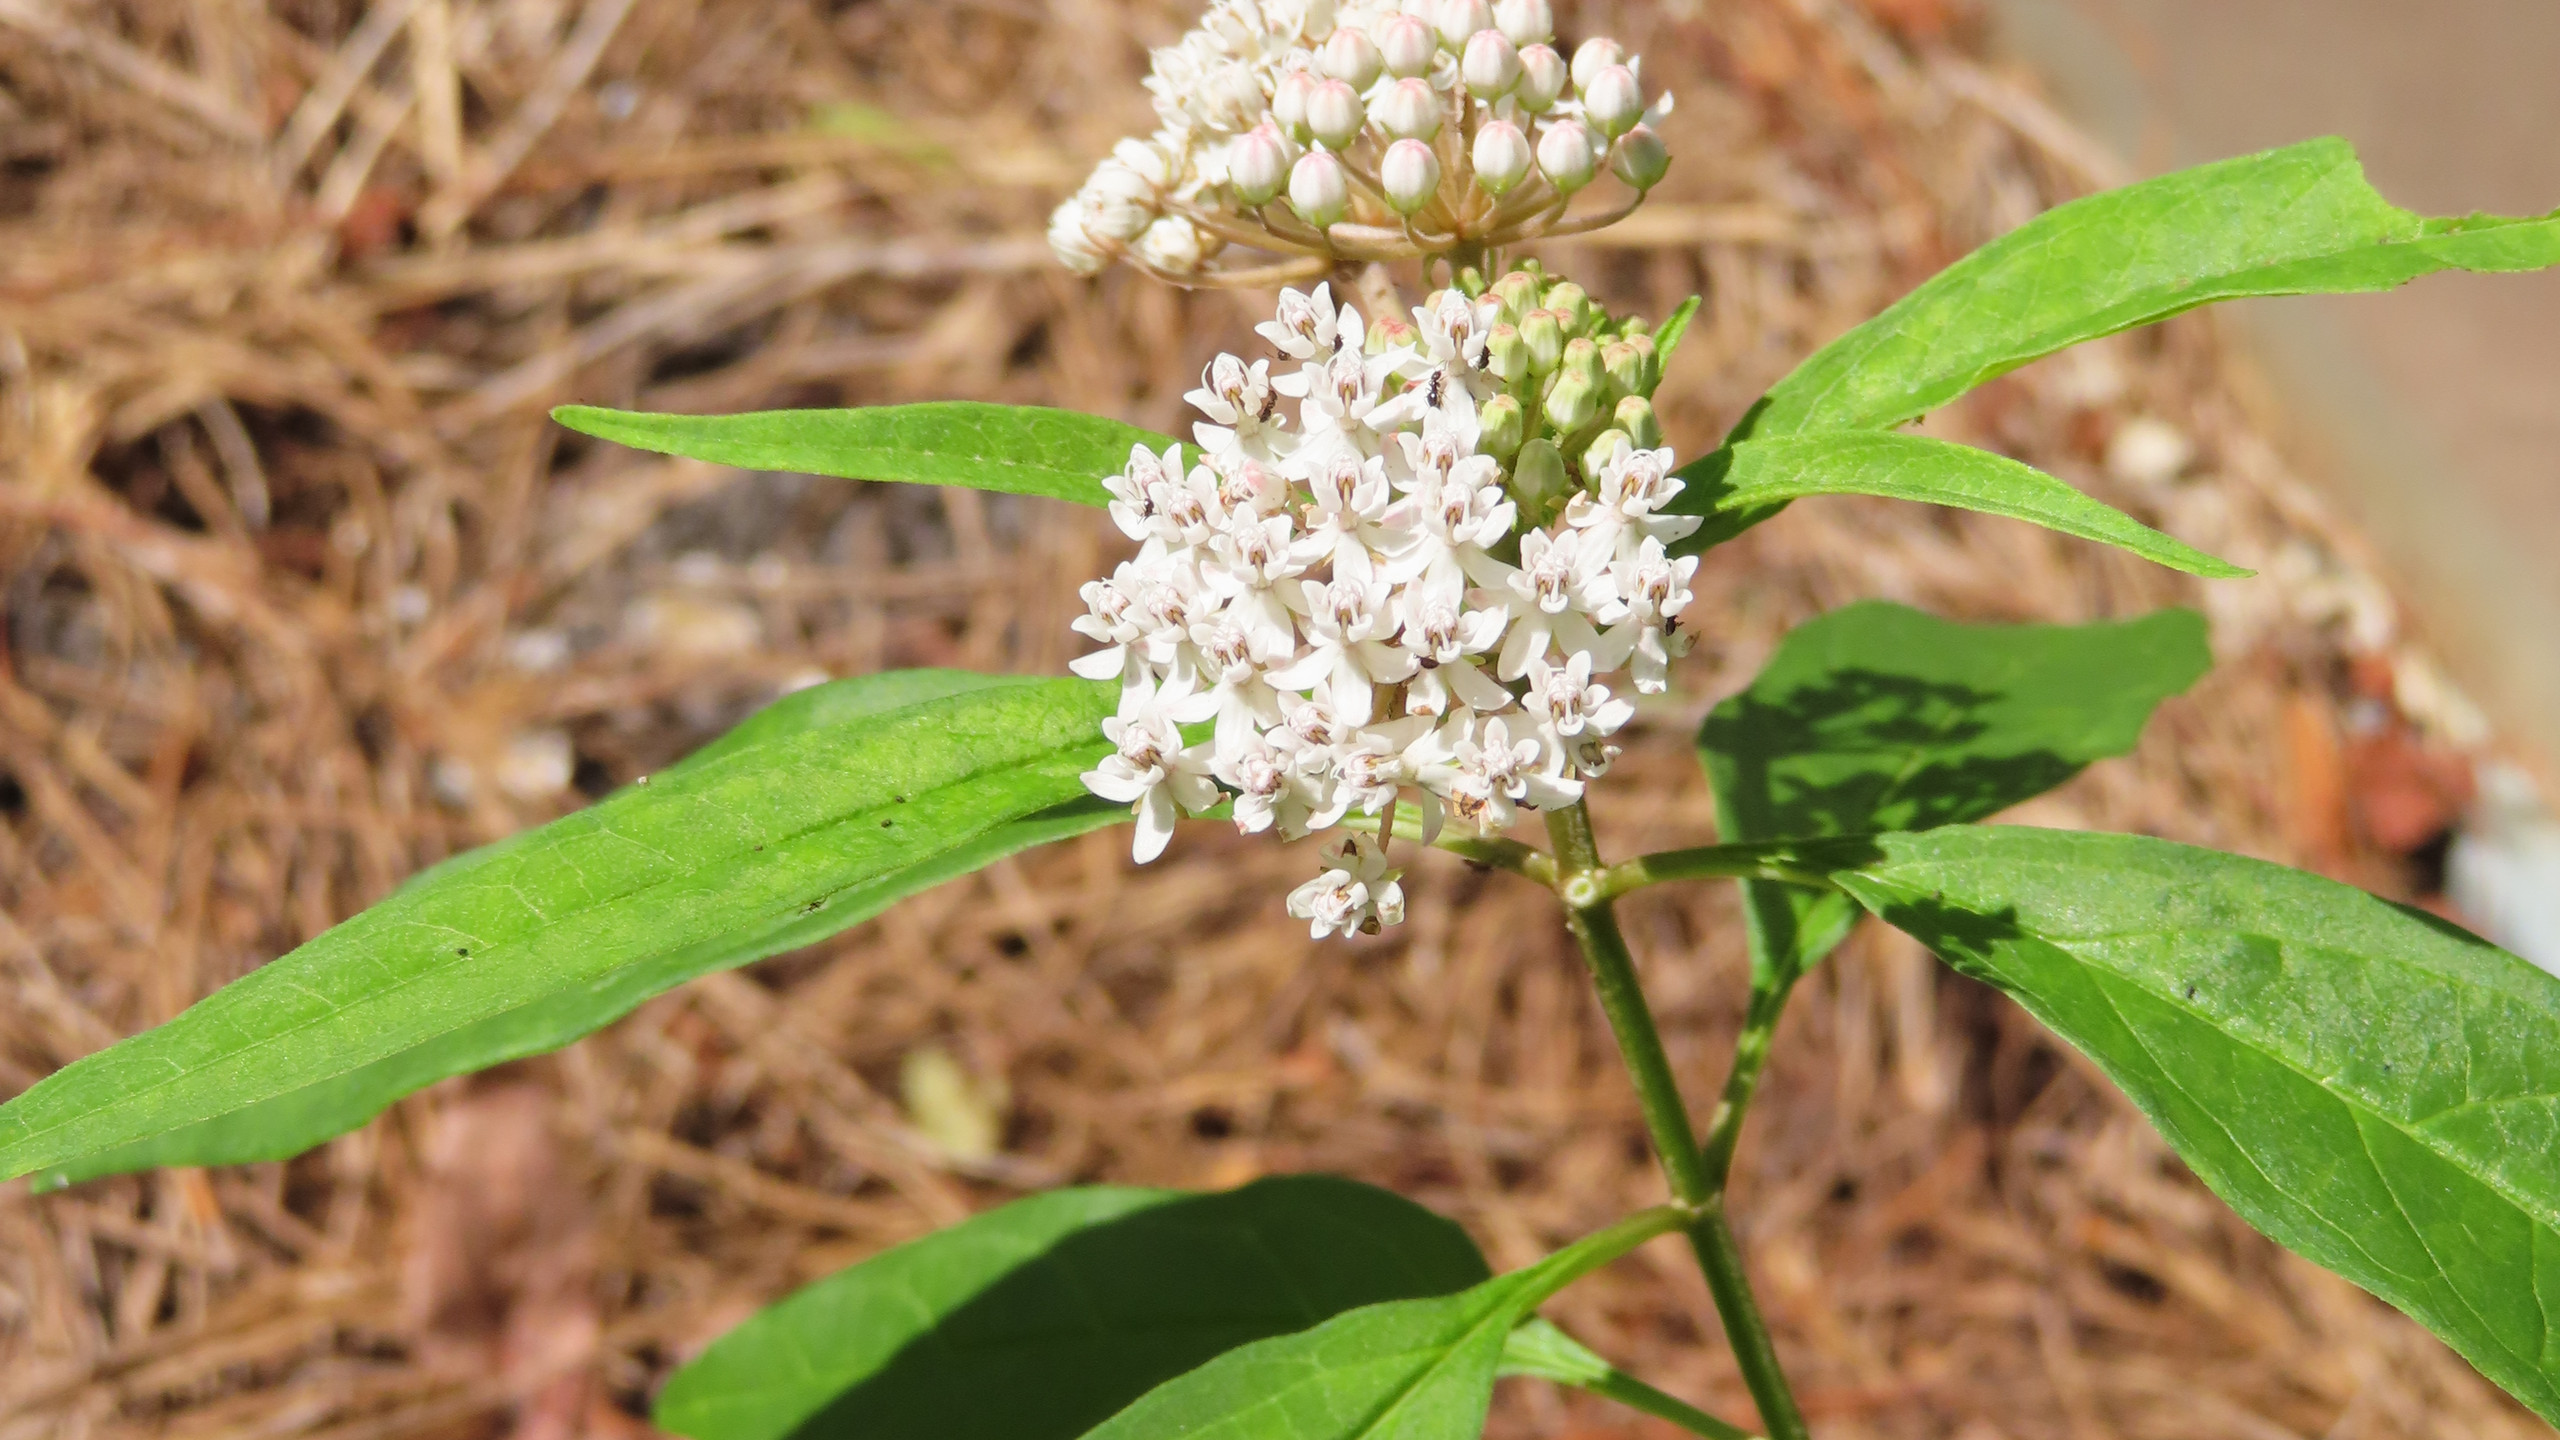 Aquatic Milkweed